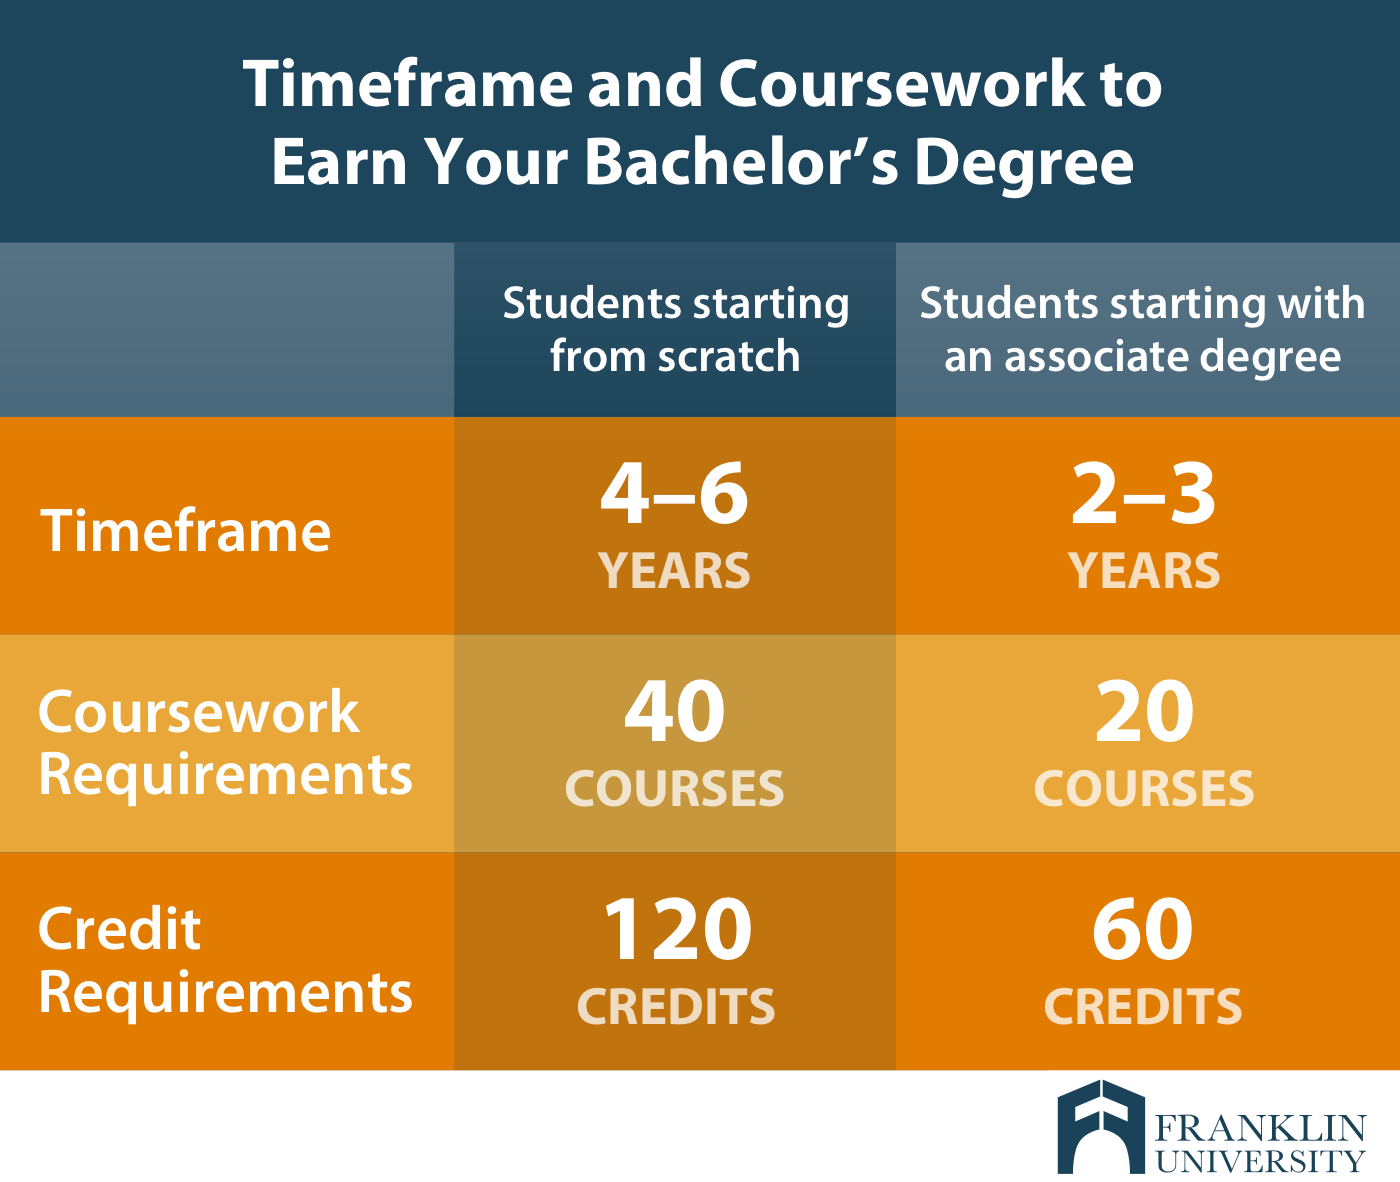 graphic describes timeframe and coursework to earn your bachelors degree